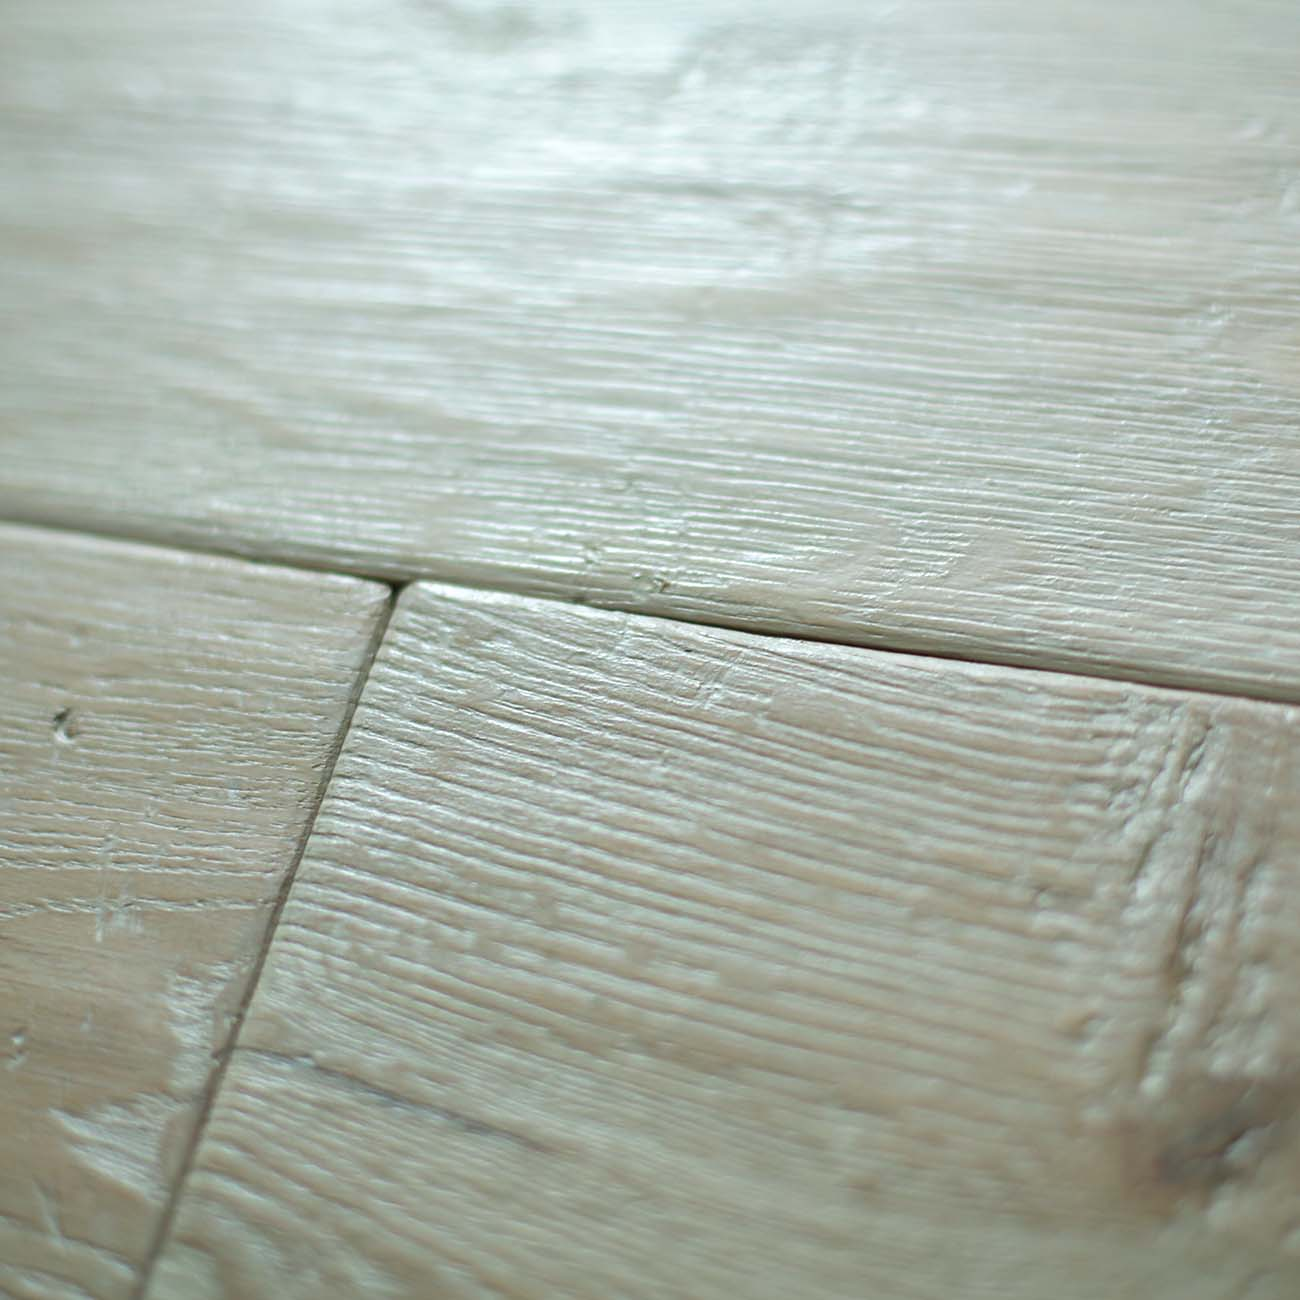 2 Generations engineered wood flooring.jpg